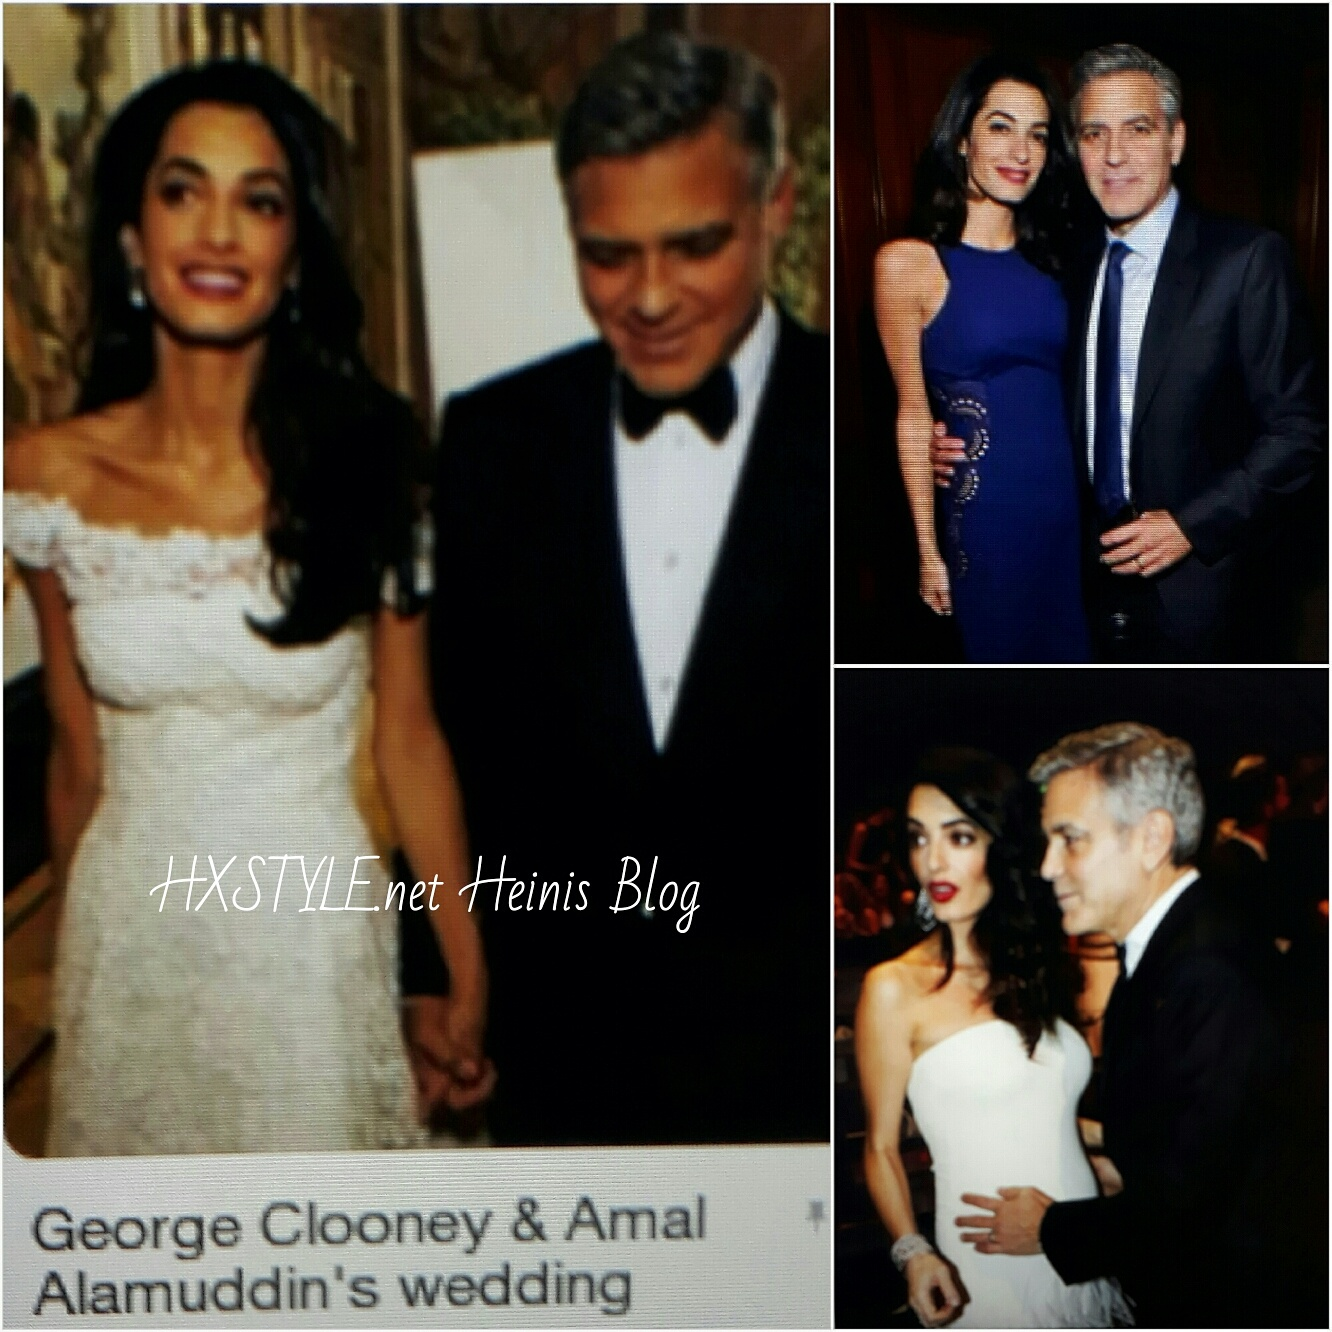 VOGUE NEWS&TRENDS. FAMOUS PEOPLES&FAMILY. WORLD FAMOUS MOVIE STAR, GEORGE CLOONEY and AMAL CLOONEY. FASHION&LUXURY Life style, Family 2014…18.10.2017